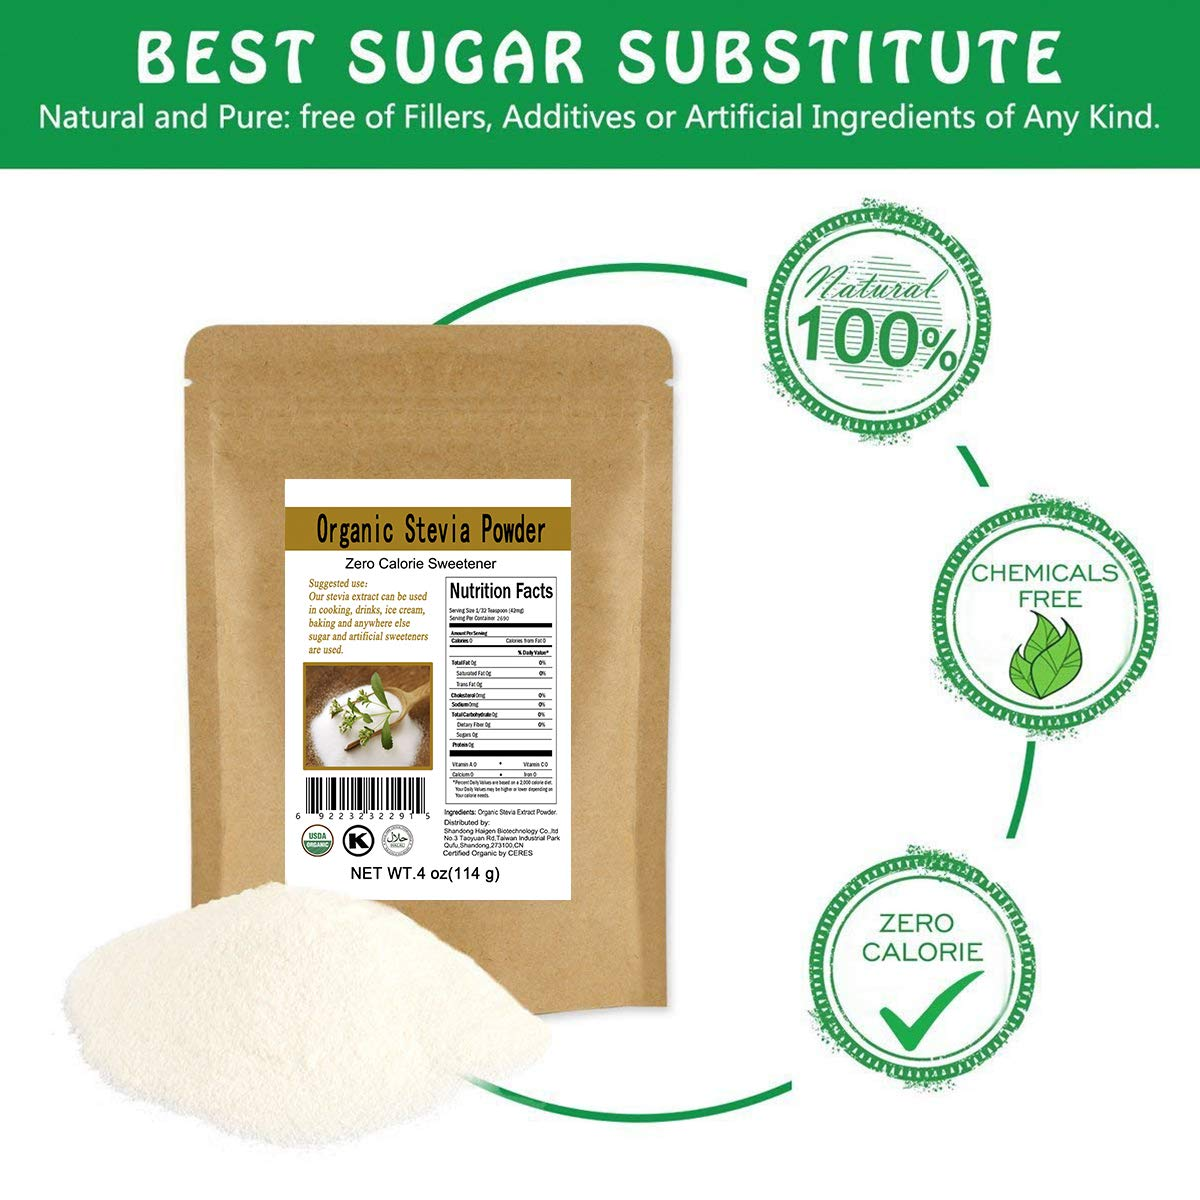 CCnature Organic Stevia Powder Extract Natural Sweetener Zero Calorie Sugar Substitute 4oz by CCnature (Image #2)